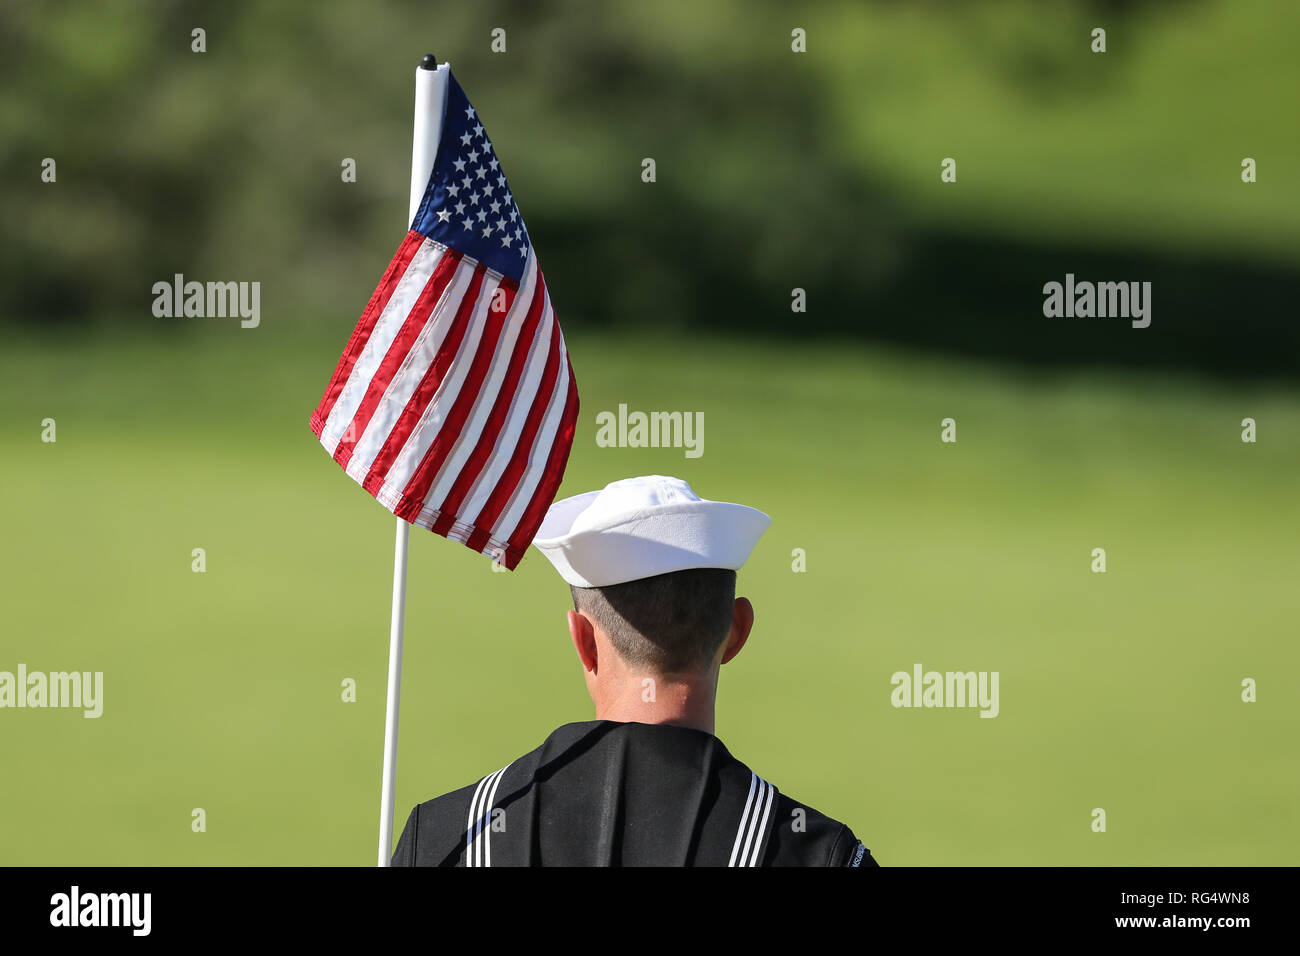 San Diego, California, USA. 27th Jan, 2019. Flag as US Flag held by service man during final round of the Farmers Open at Torrey Pines golf course in San Diego, Ca on January 27, 2019. Jevone Moore Credit: csm/Alamy Live News - Stock Image